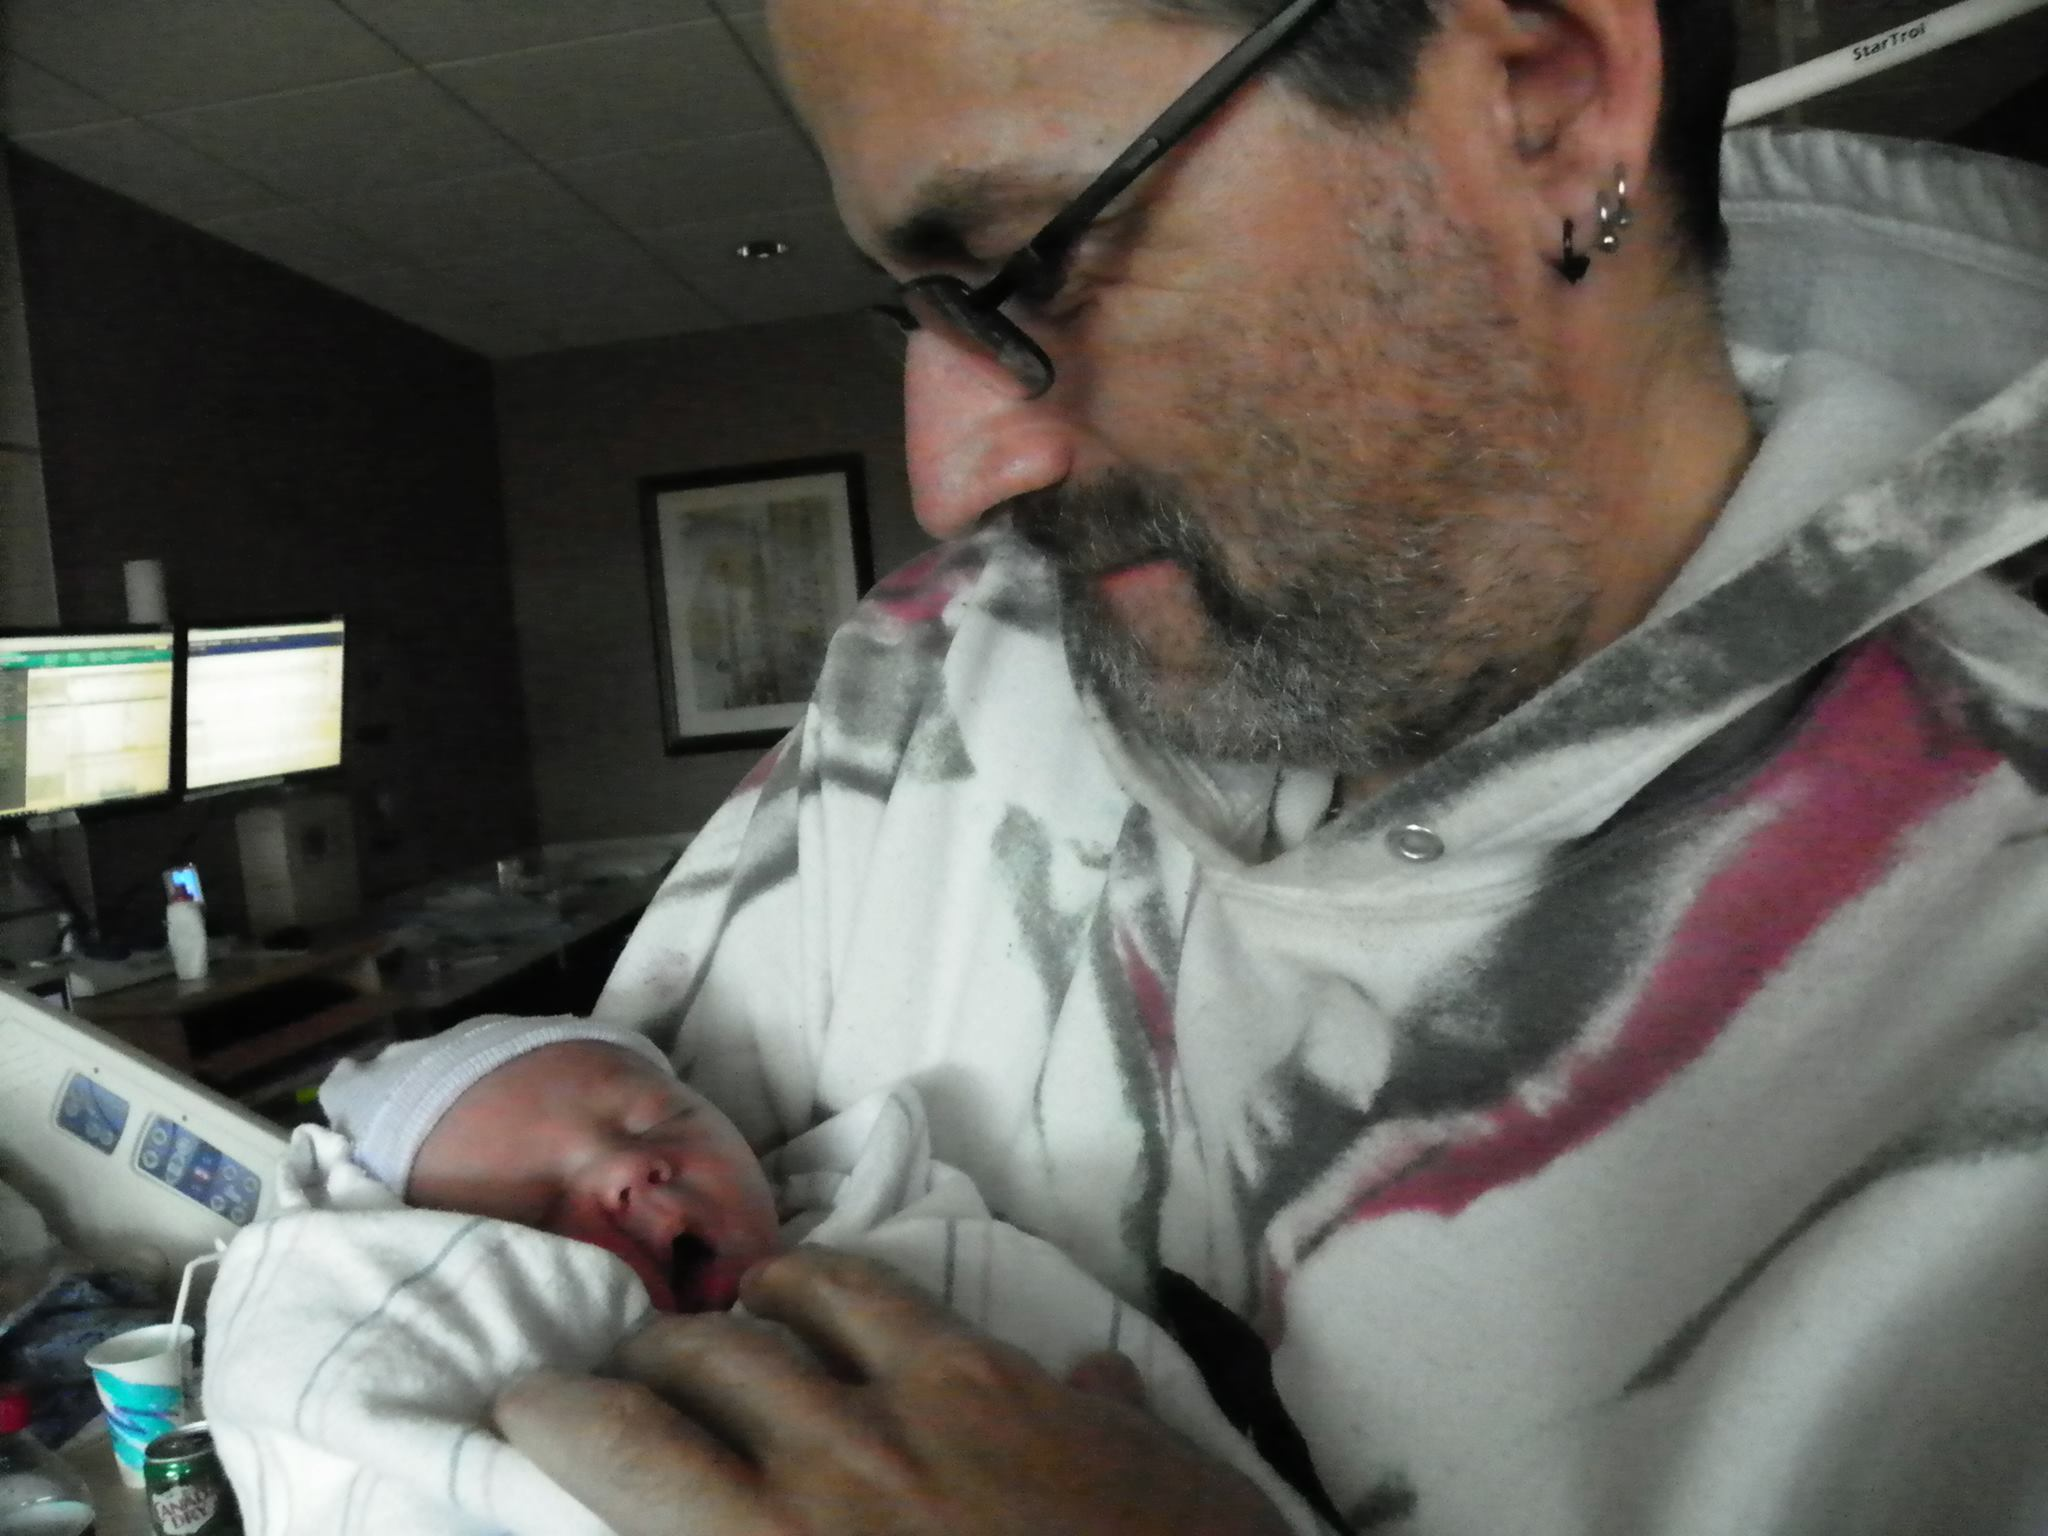 Tom L. with baby Tanner